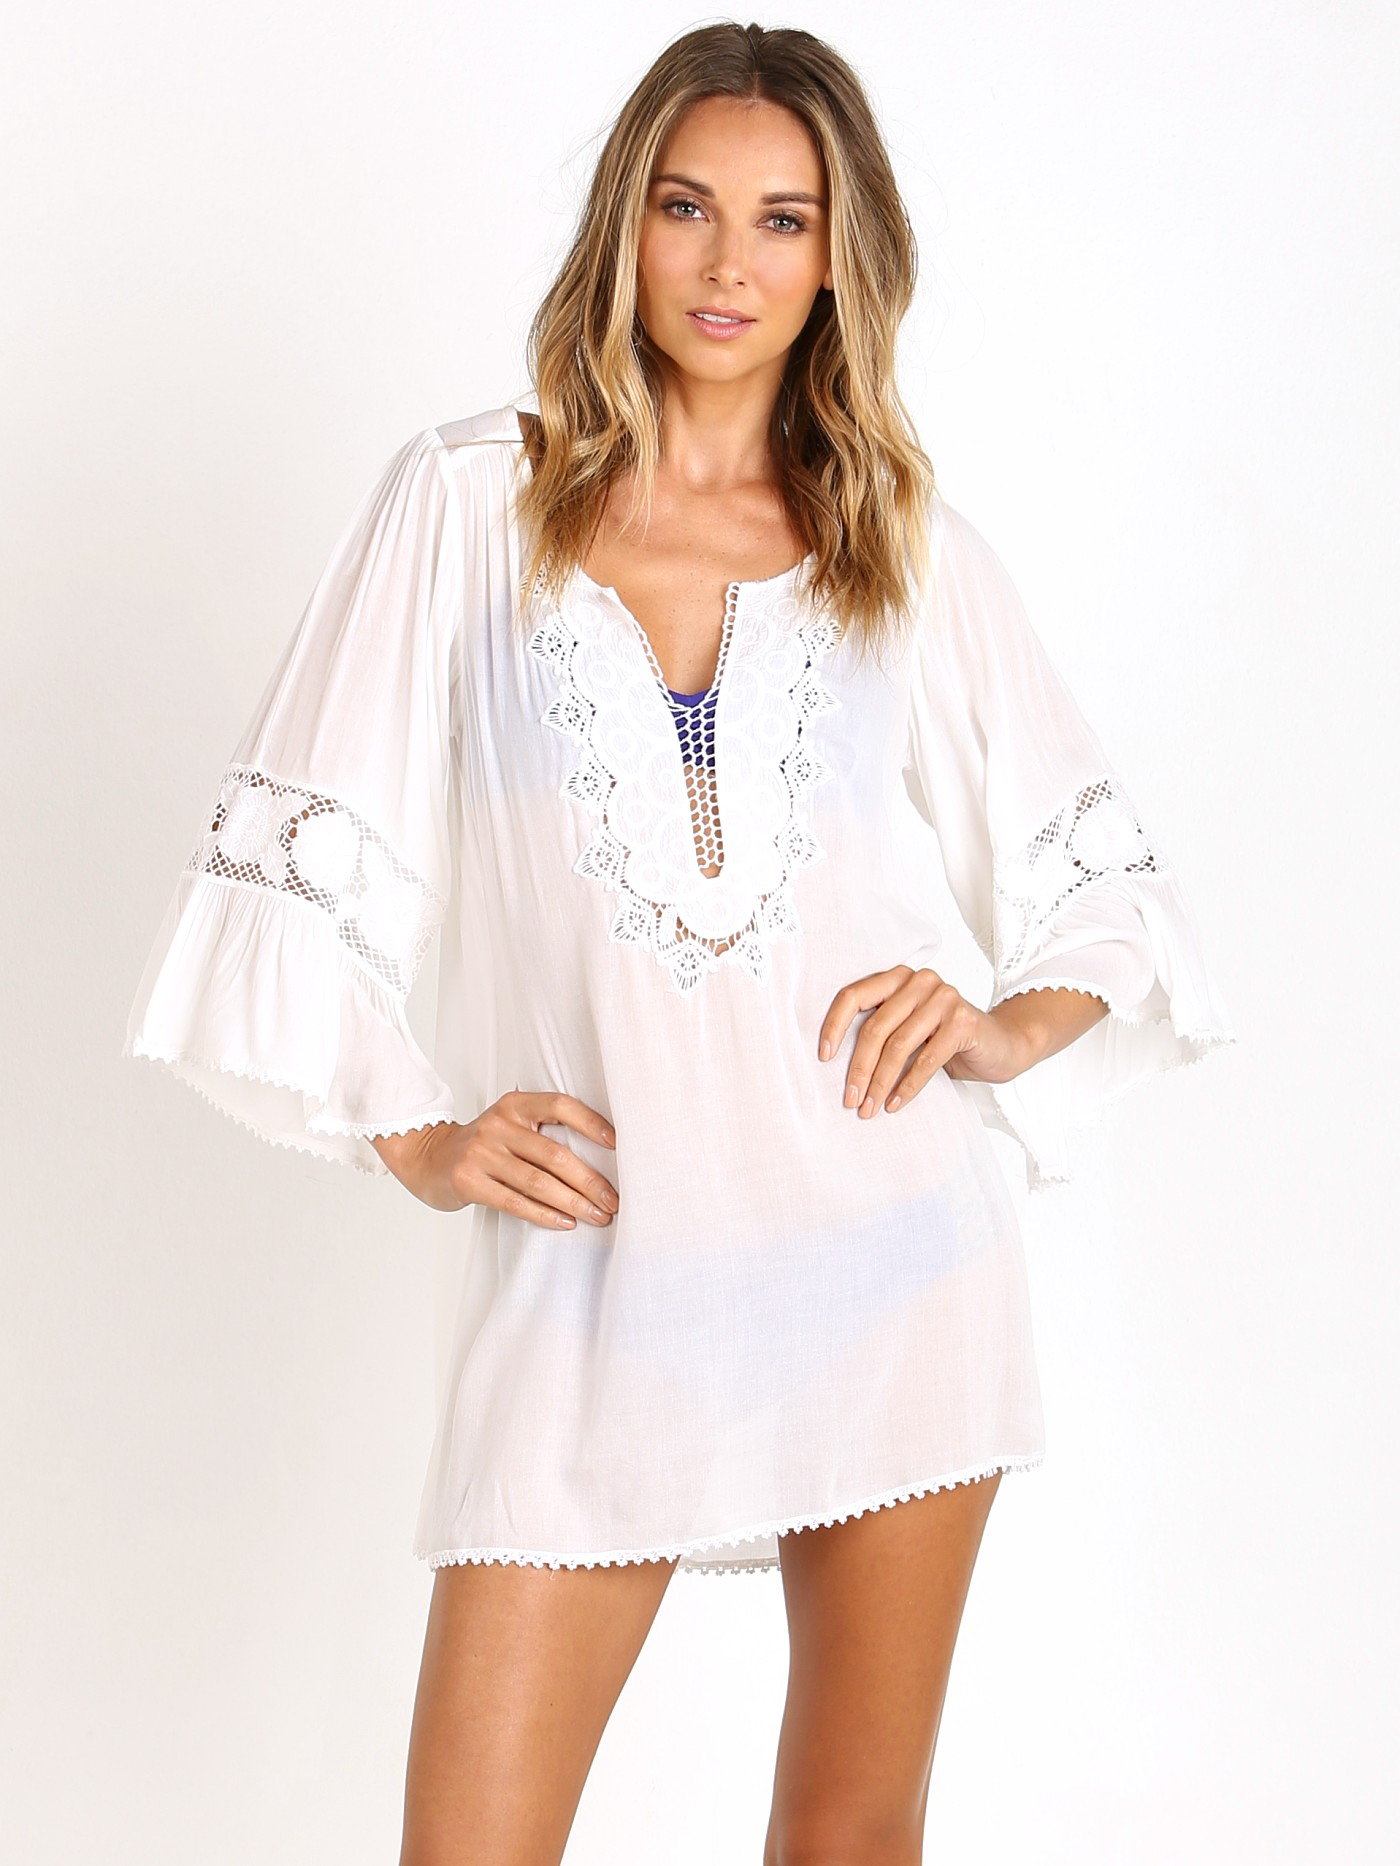 deee788bfd72 L Space Breakaway Cover Up Ivory BRECV16 - Free Shipping at Largo Drive